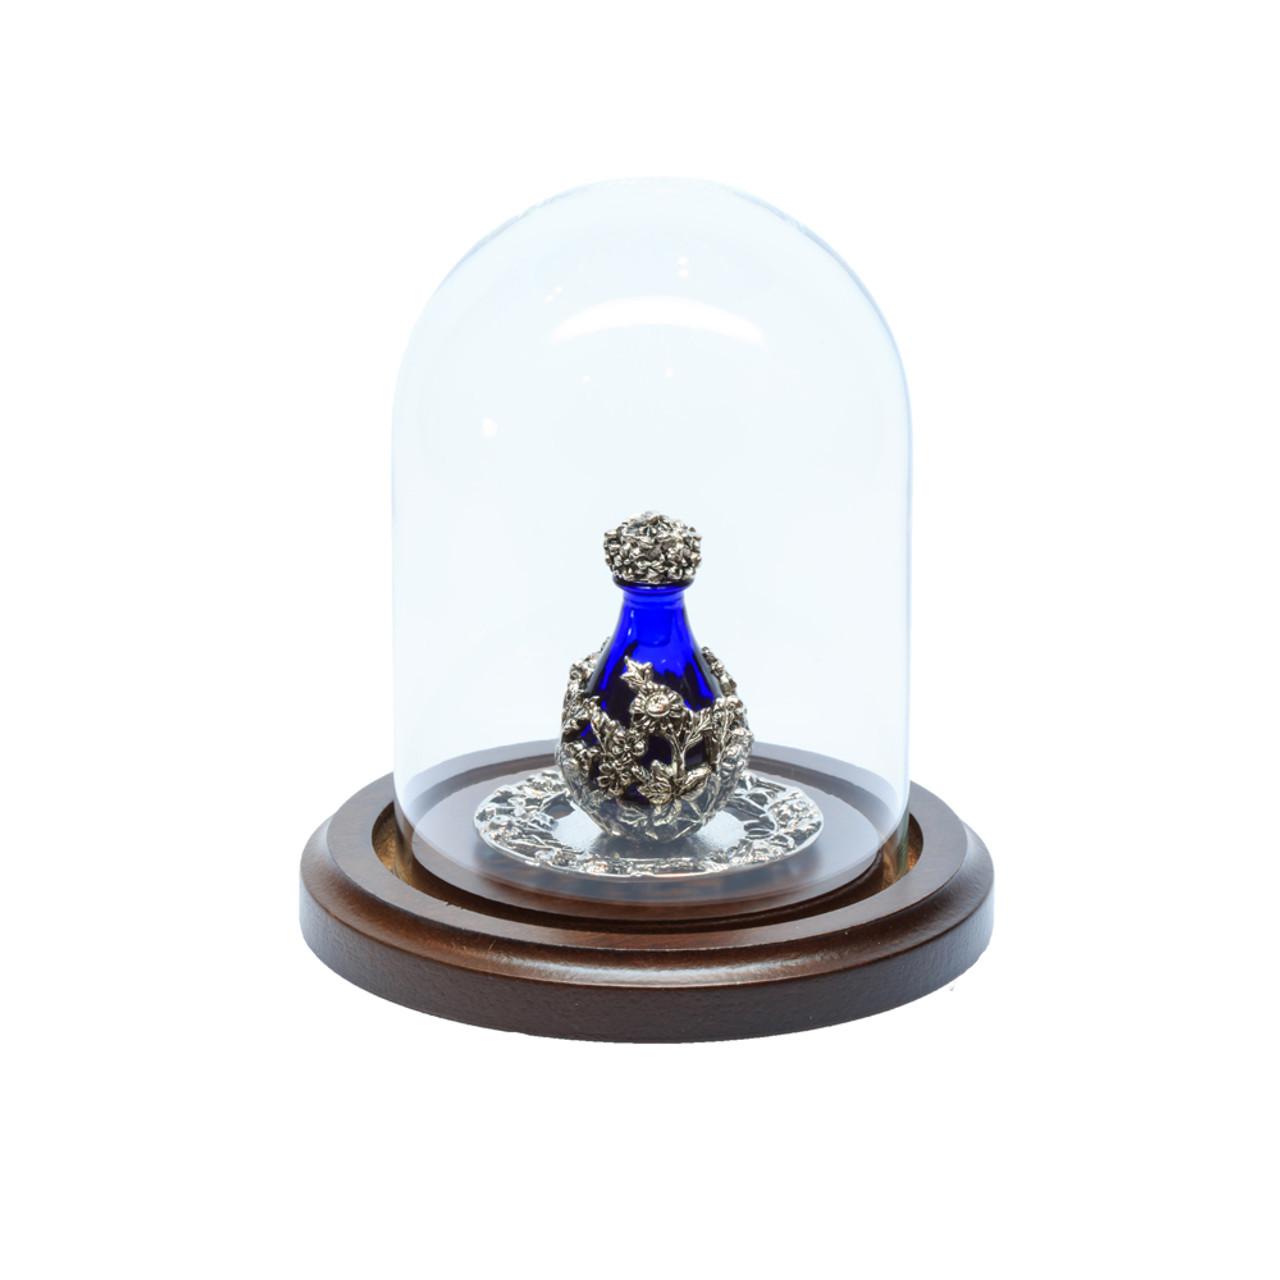 """Glass Maxi Dome with Walnut Base - 3"""" D x 4"""" H - shown with Optional Silver with Blue Glass Victorian Tear Bottle and with Optional 2"""" Silver Tray with Filigree Rim - Both Sold Separately"""